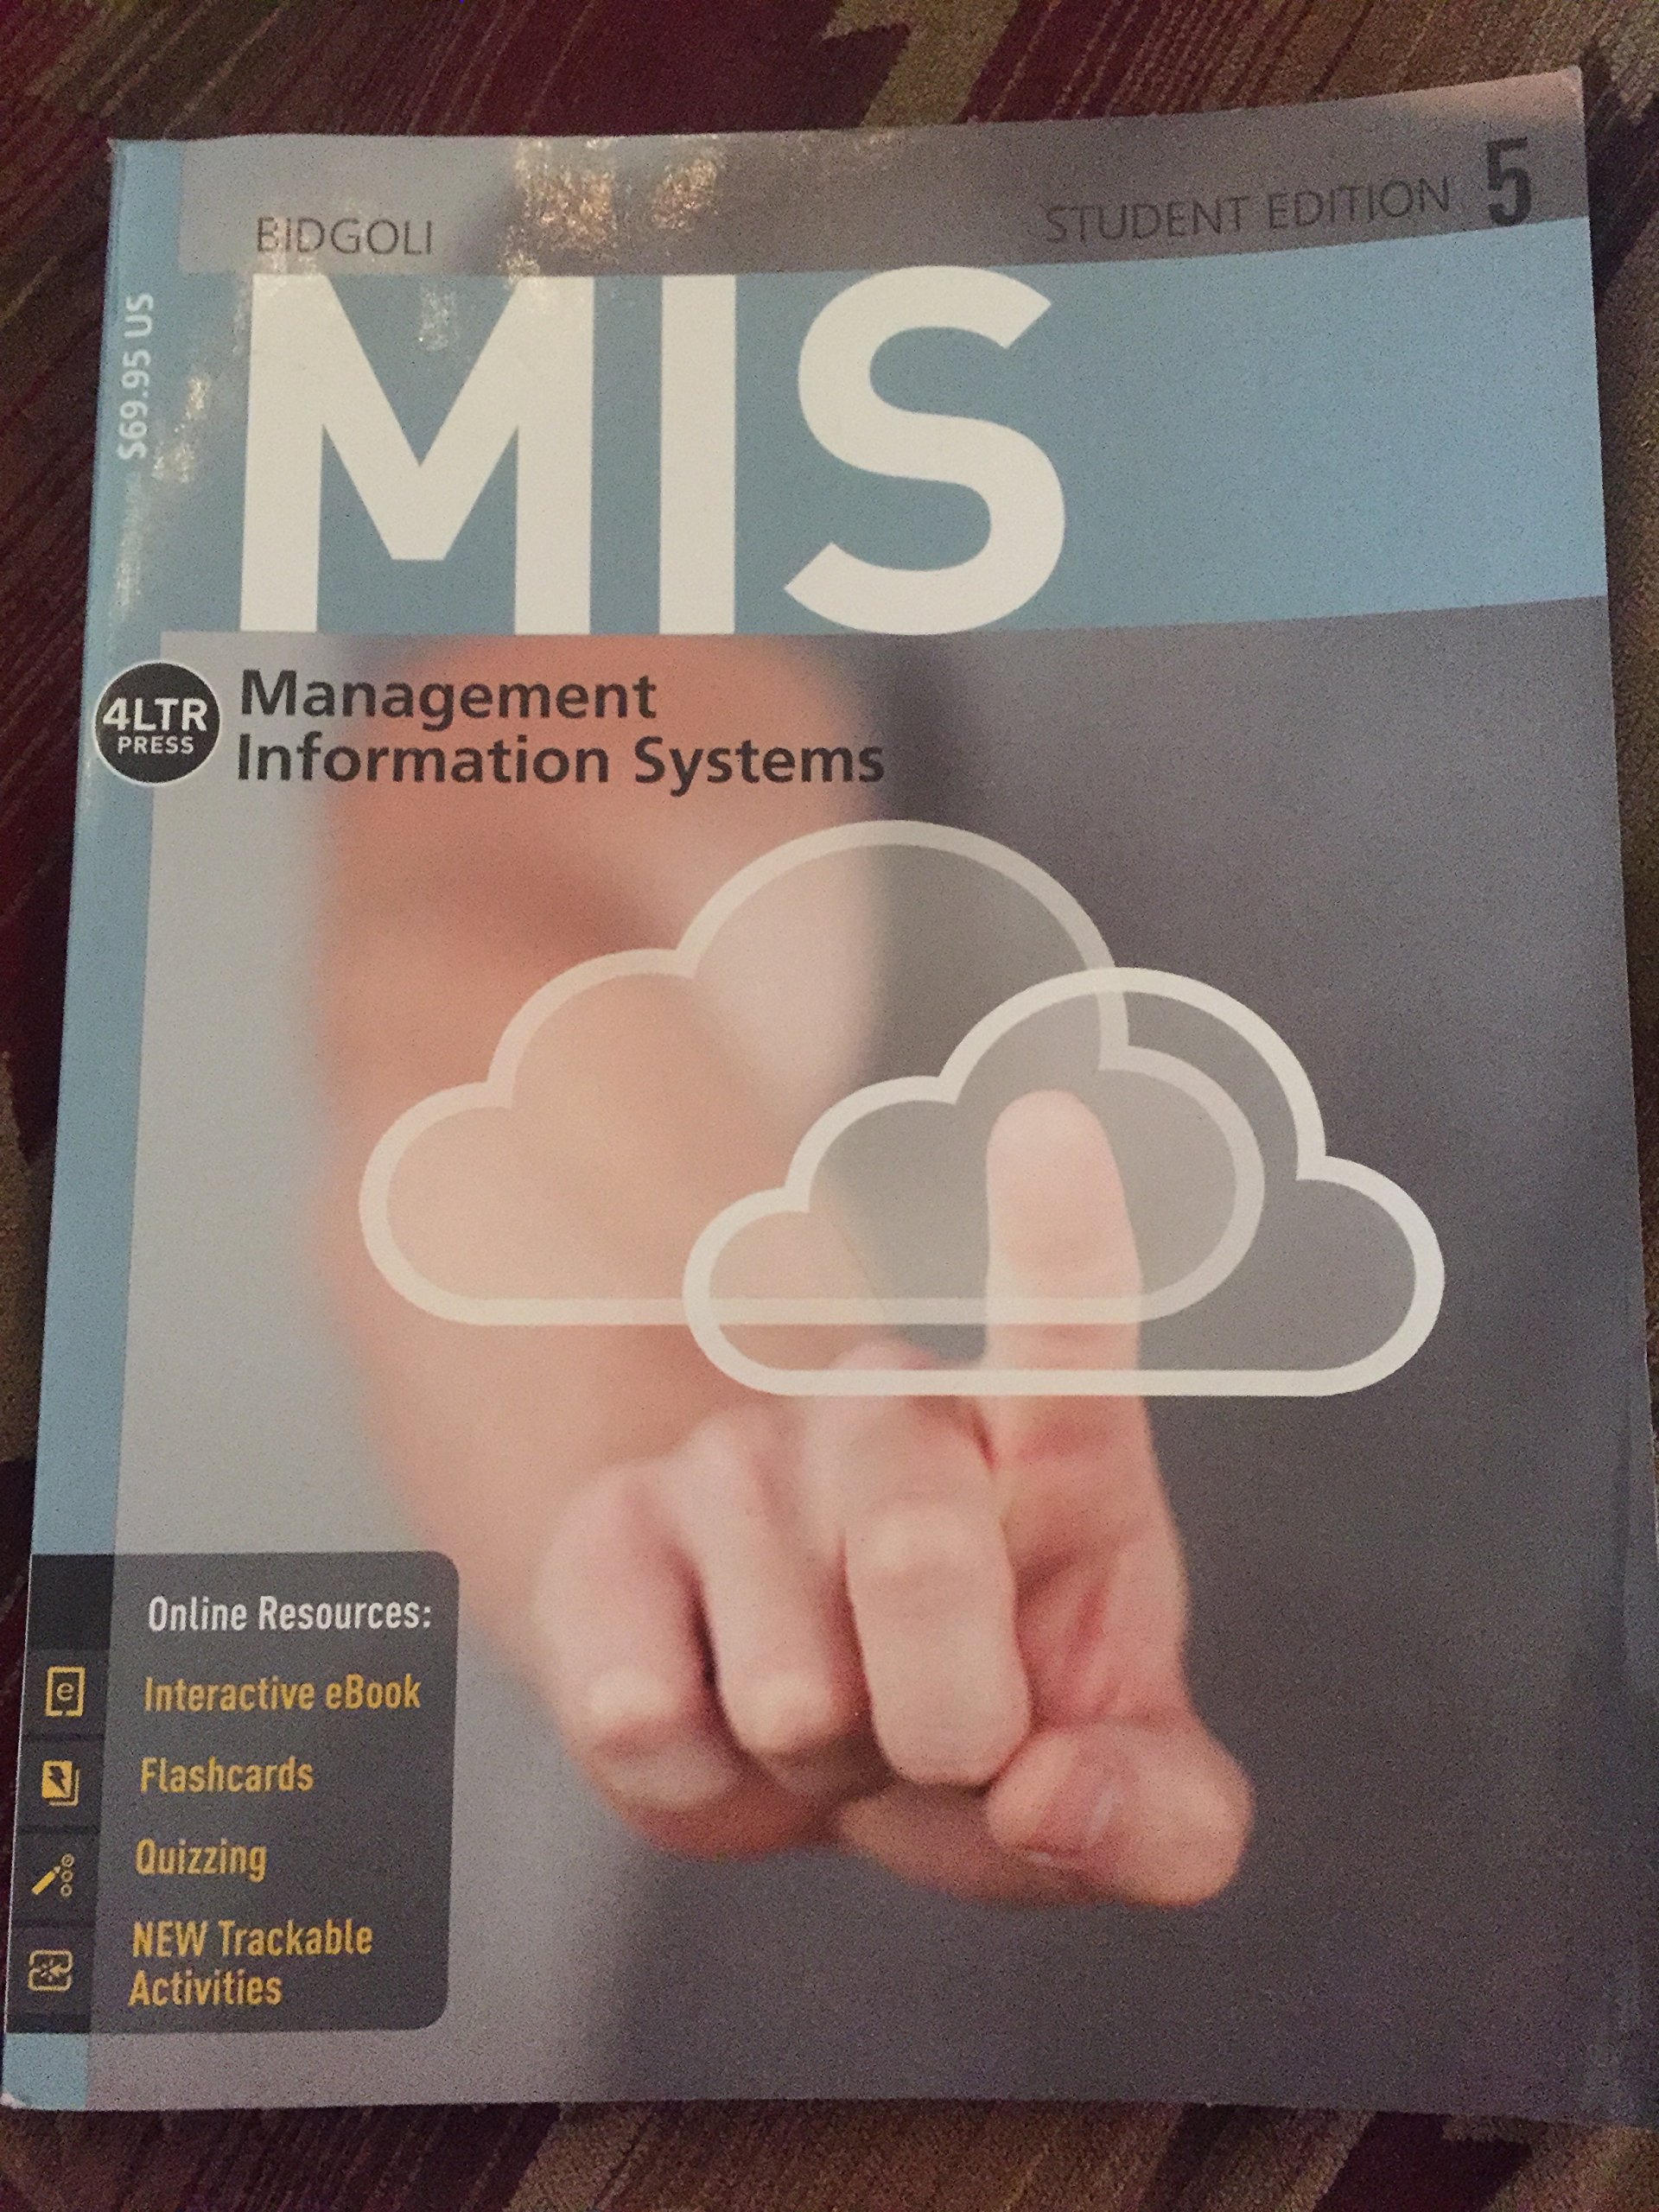 MIS Management Information Systems 5: Bidgoli: 9781285836461: Amazon.com:  Books